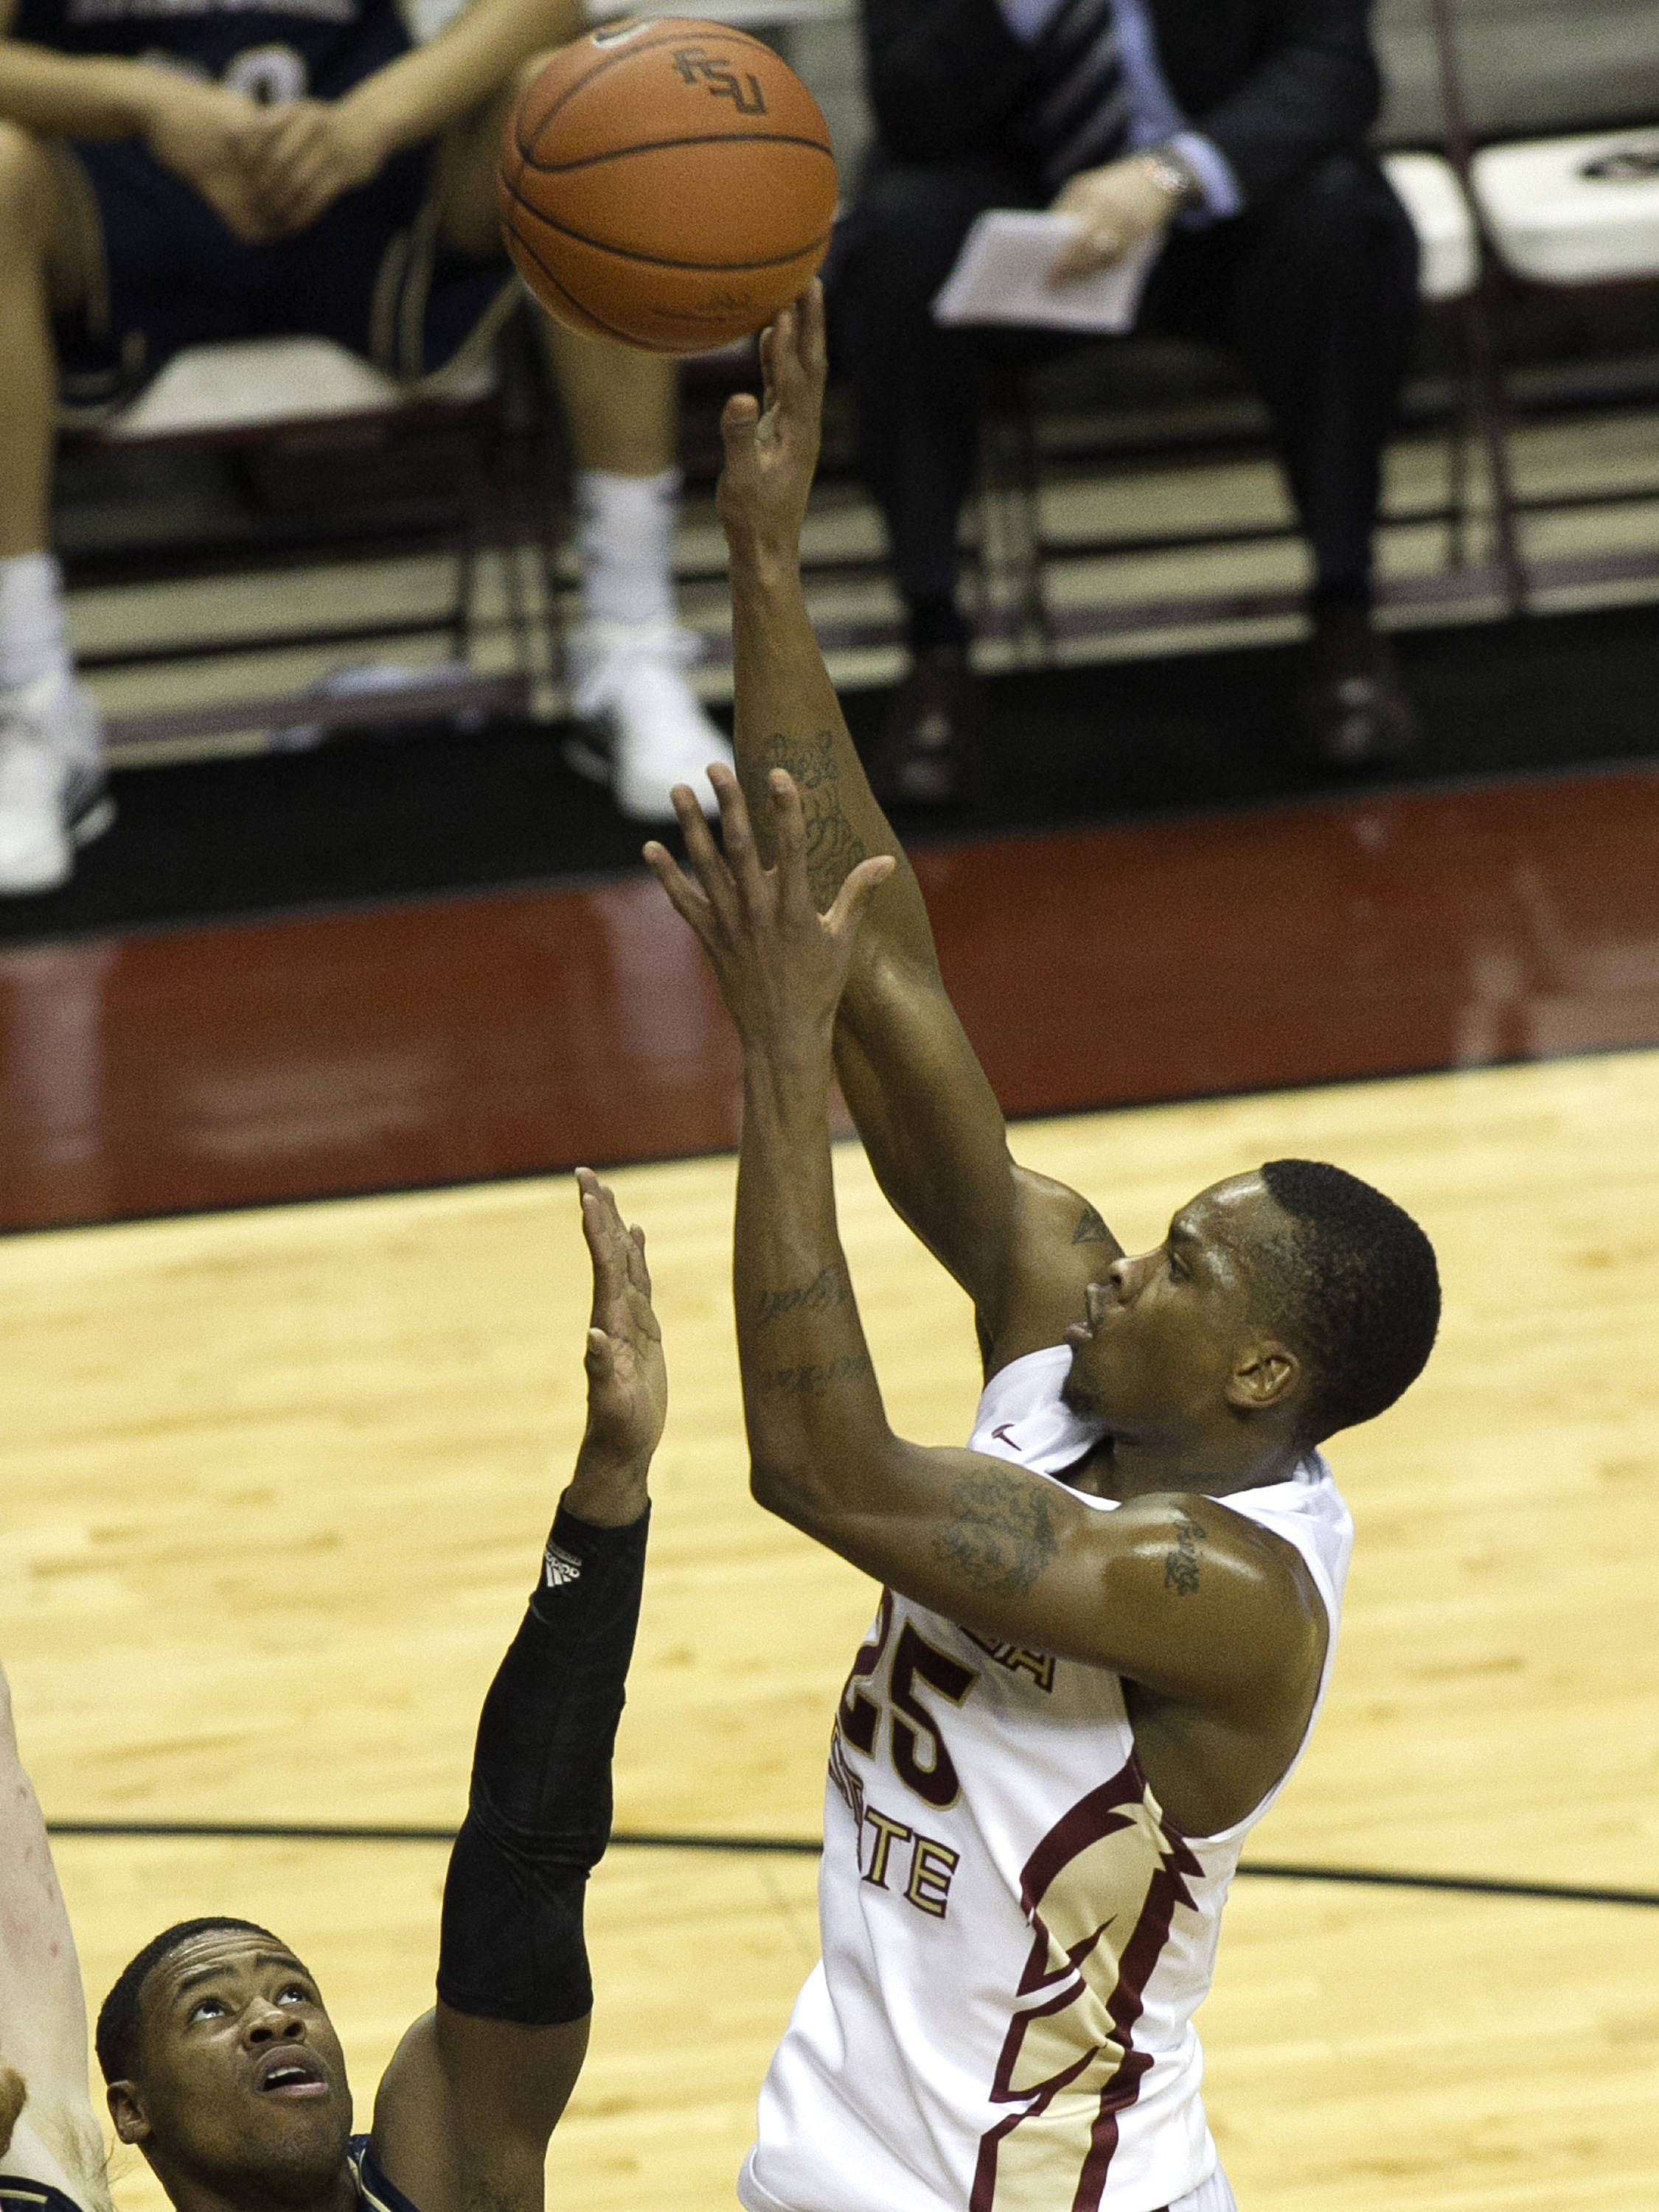 Aaron Thomas (25) with a short jumper in the paint, FSU vs Notre Dame, 1-21-14, (Photo's by Steve Musco)